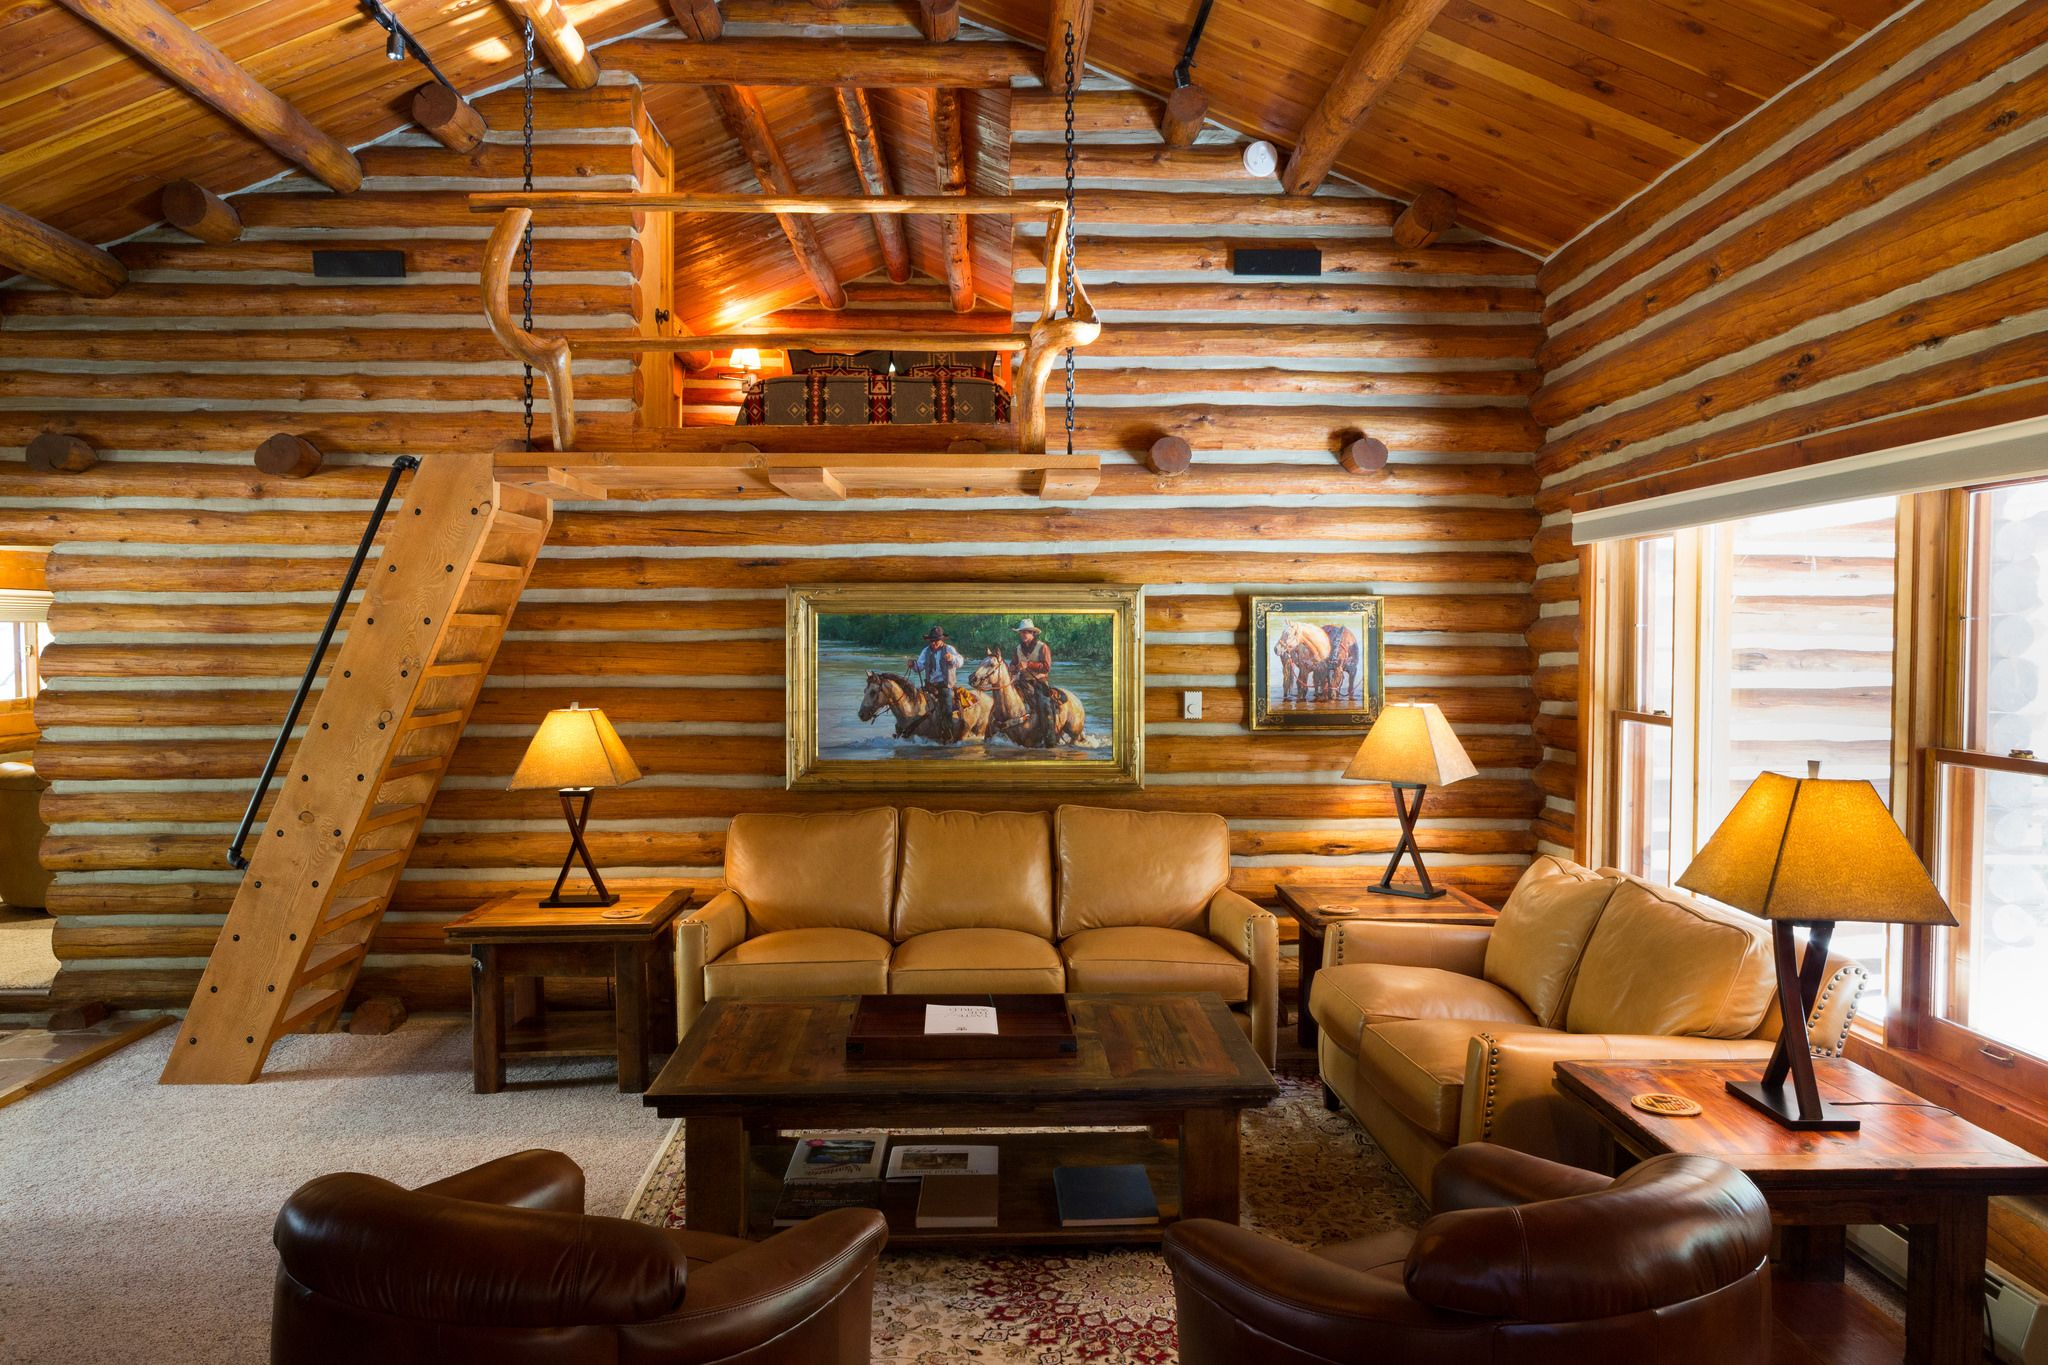 Stay in a private log cabin home with jacuzzi and hot tub